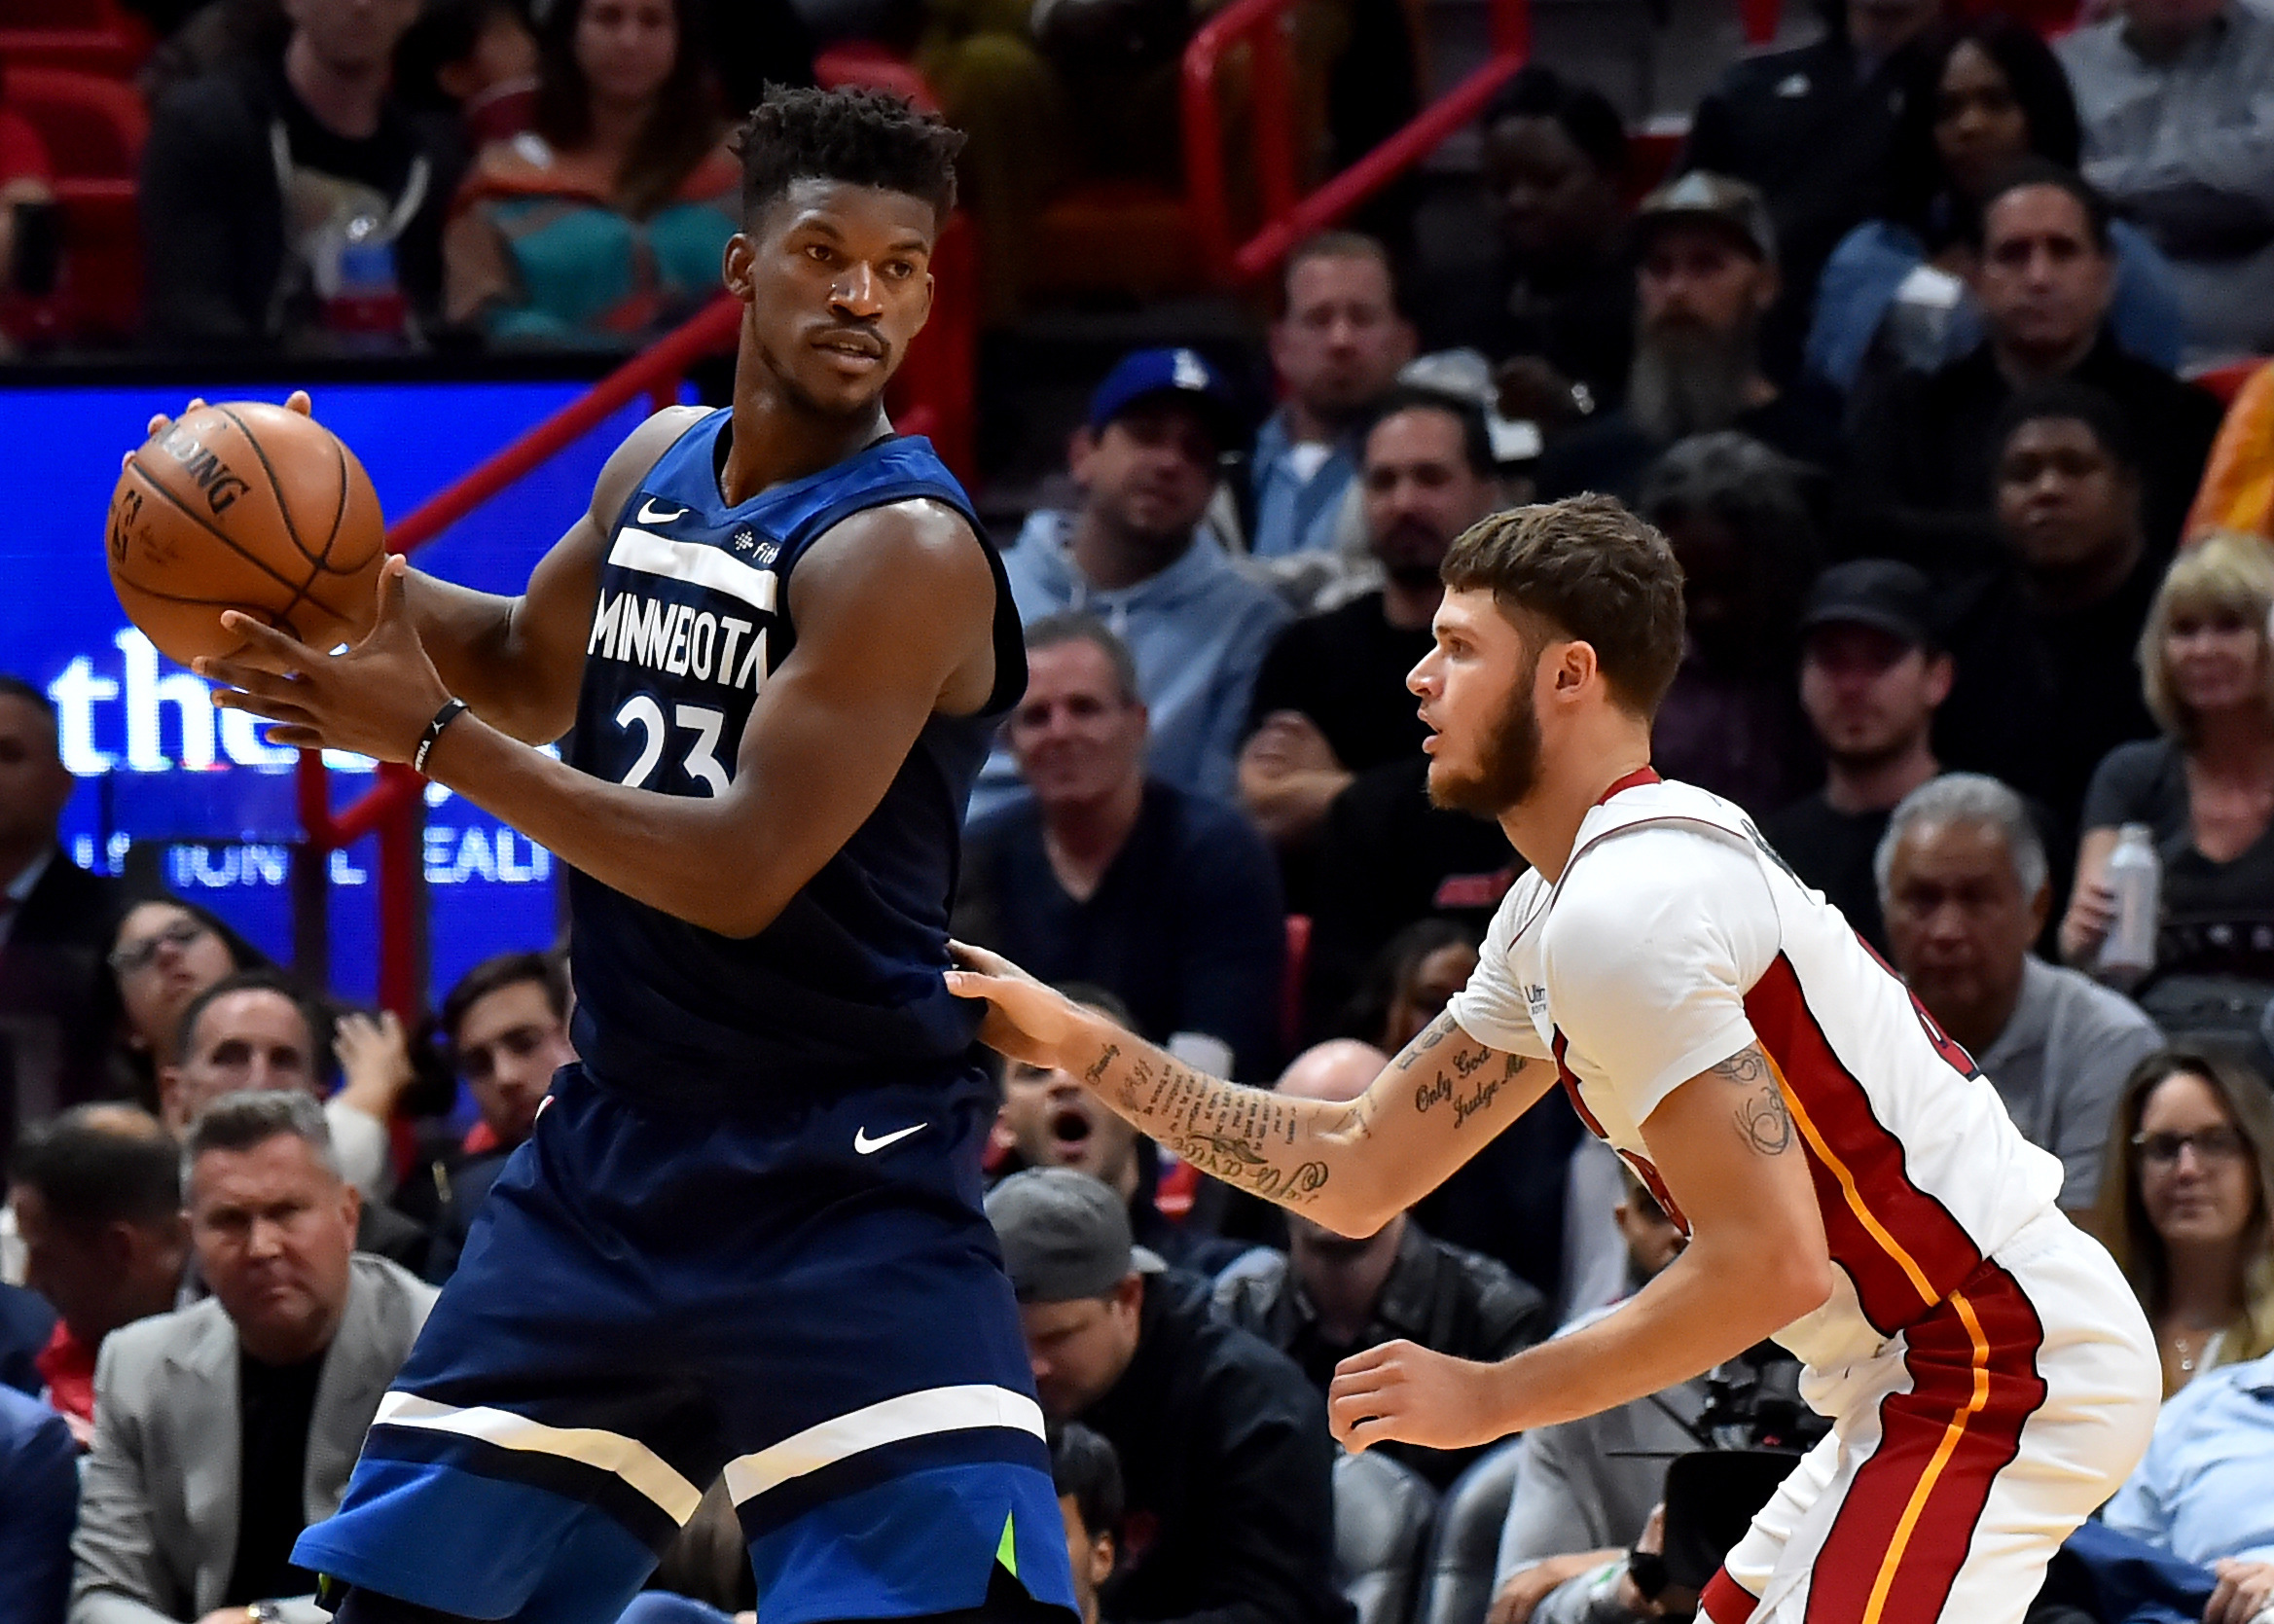 A Butler trade doesn't look like it's happening, now what?